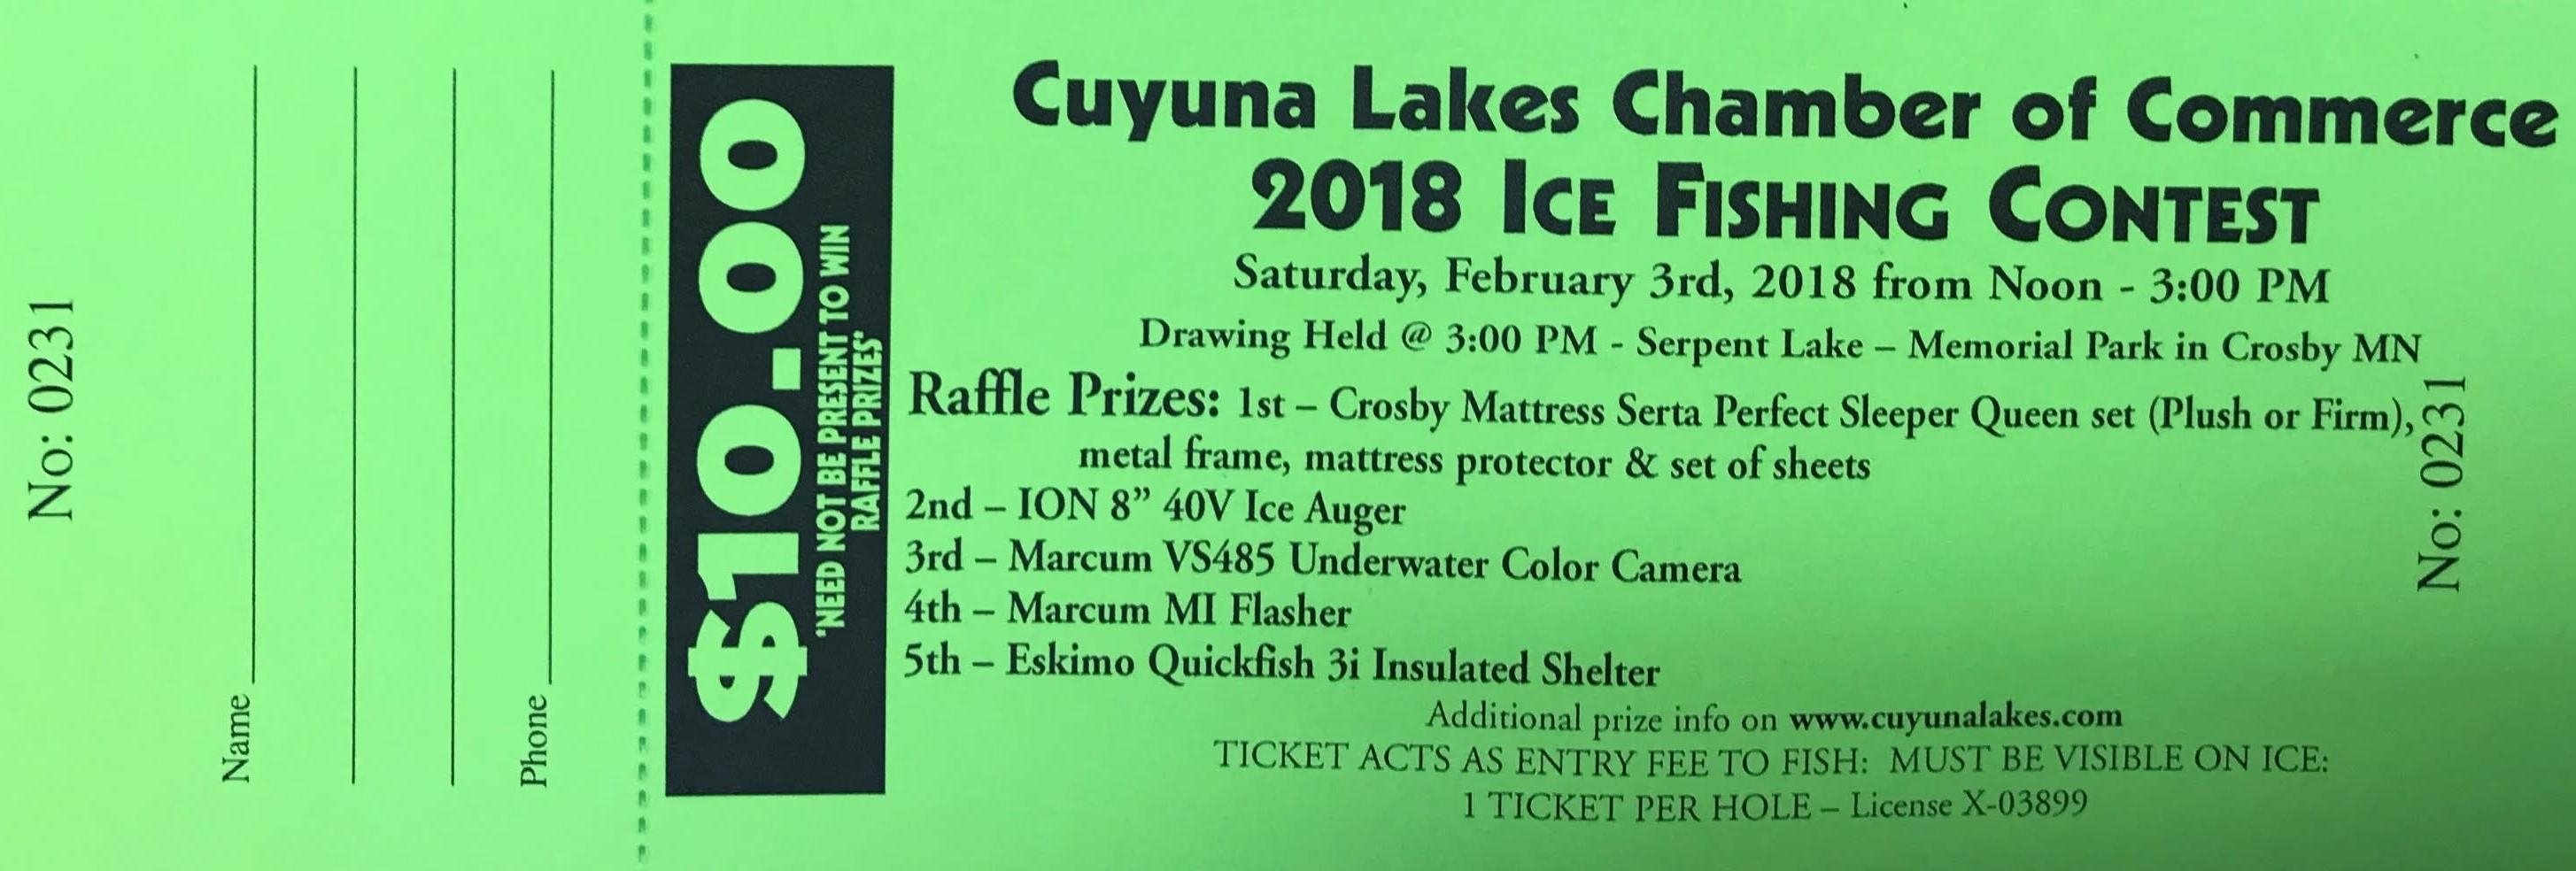 Ice Fishing Contest and Scorpion Homecoming | Cuyunalakes